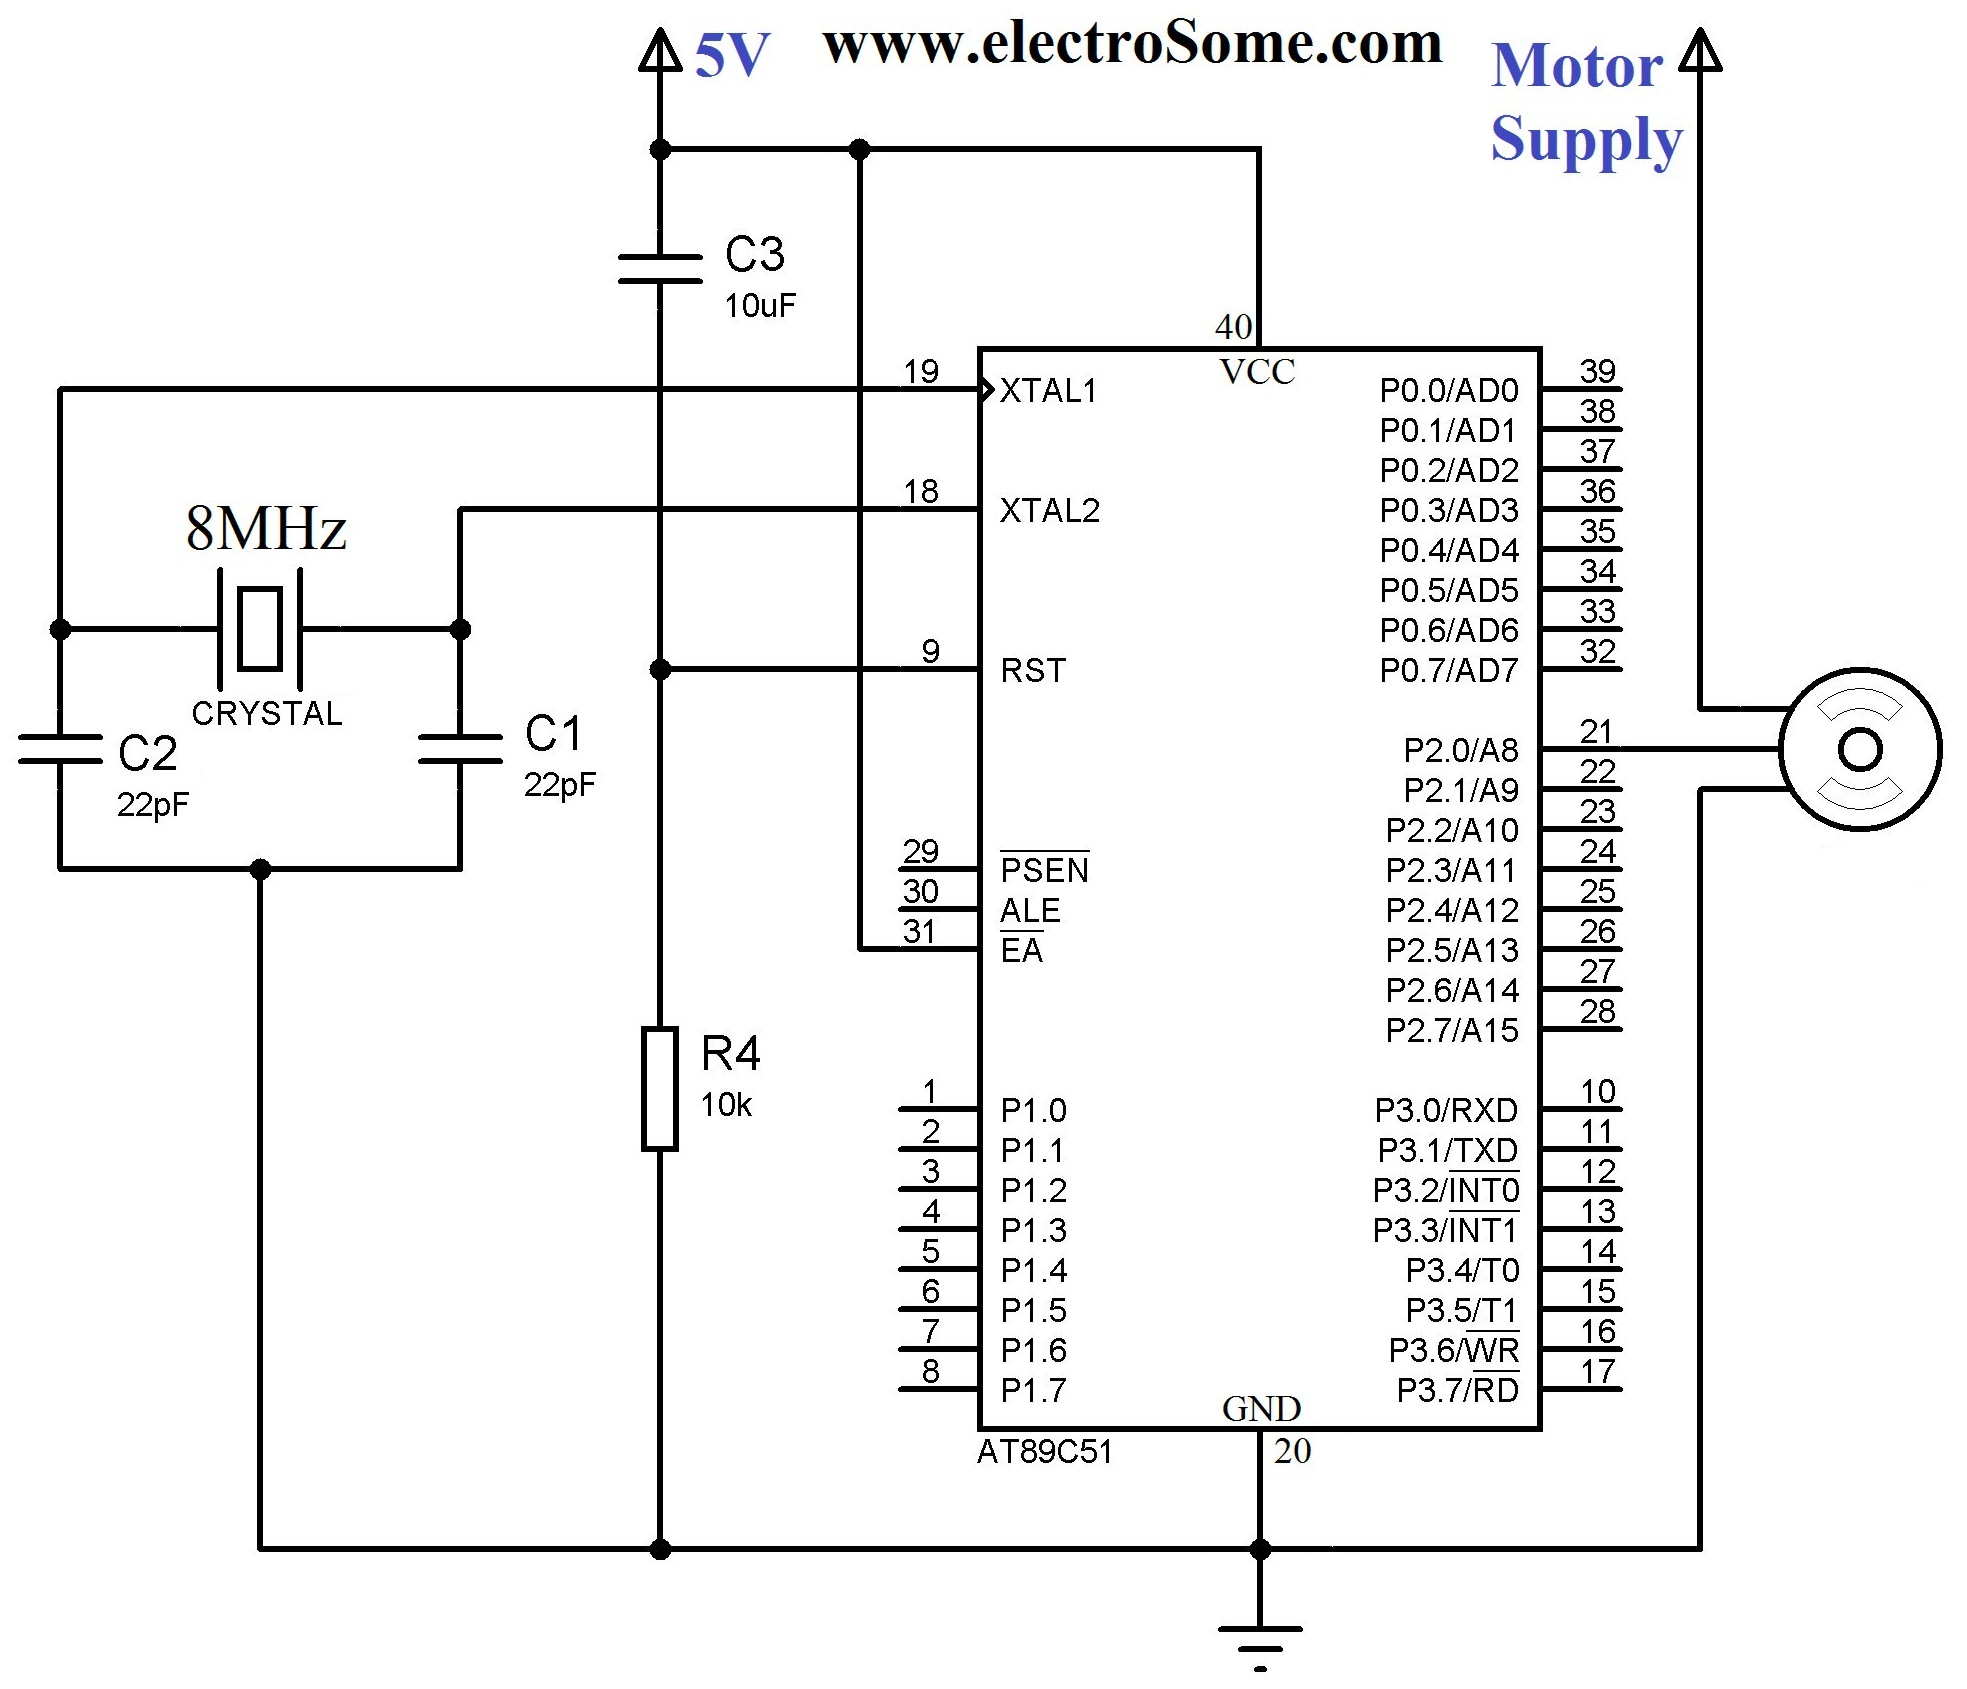 Dc Servo Motor Controller Circuit Diagram 8085 Projects Blog Archive A Digital Timer Using Ne555 Interfacing With 8051 Microcontroller Keil C At89c51